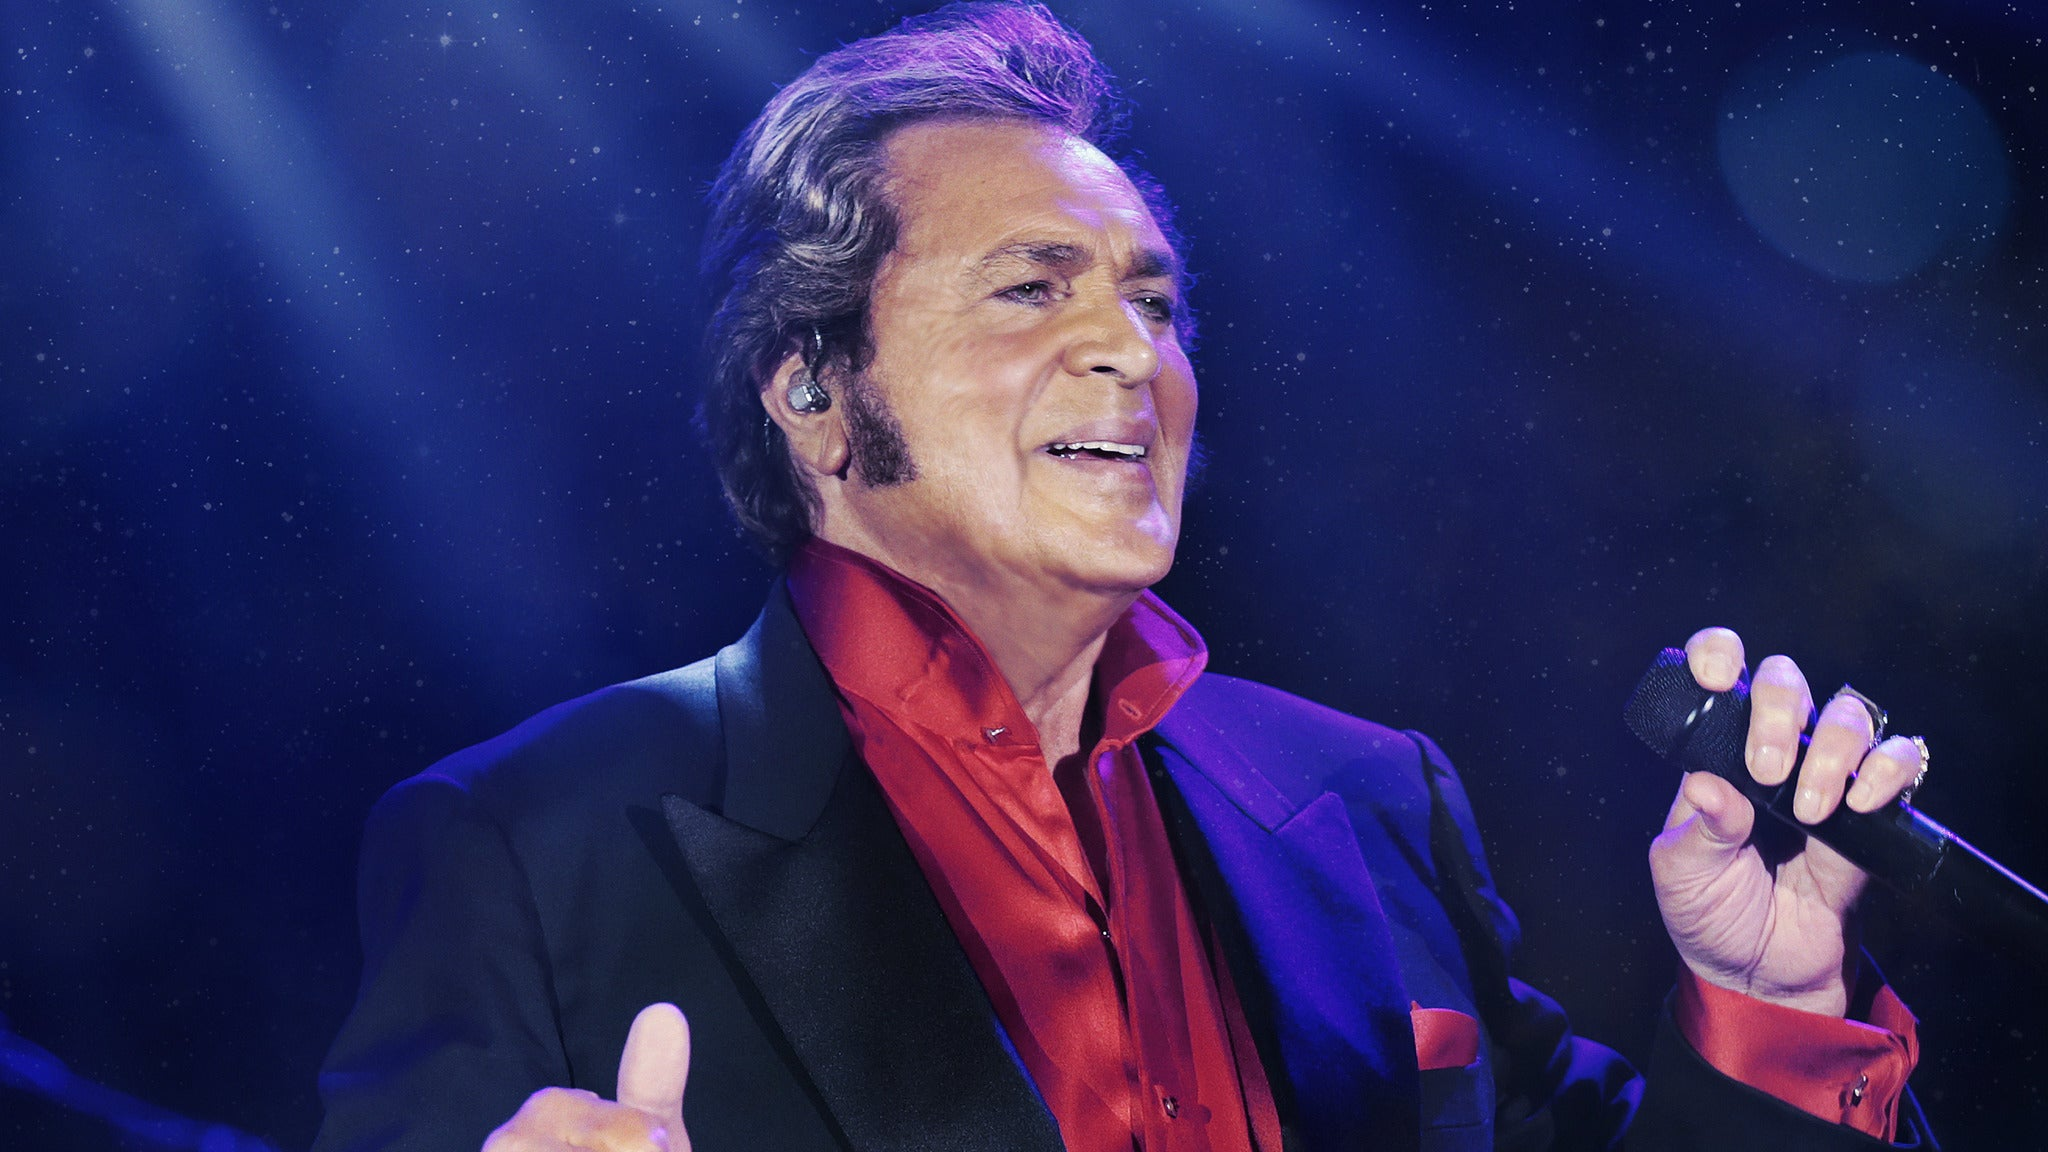 Engelbert Humperdinck at Community Theatre-NJ